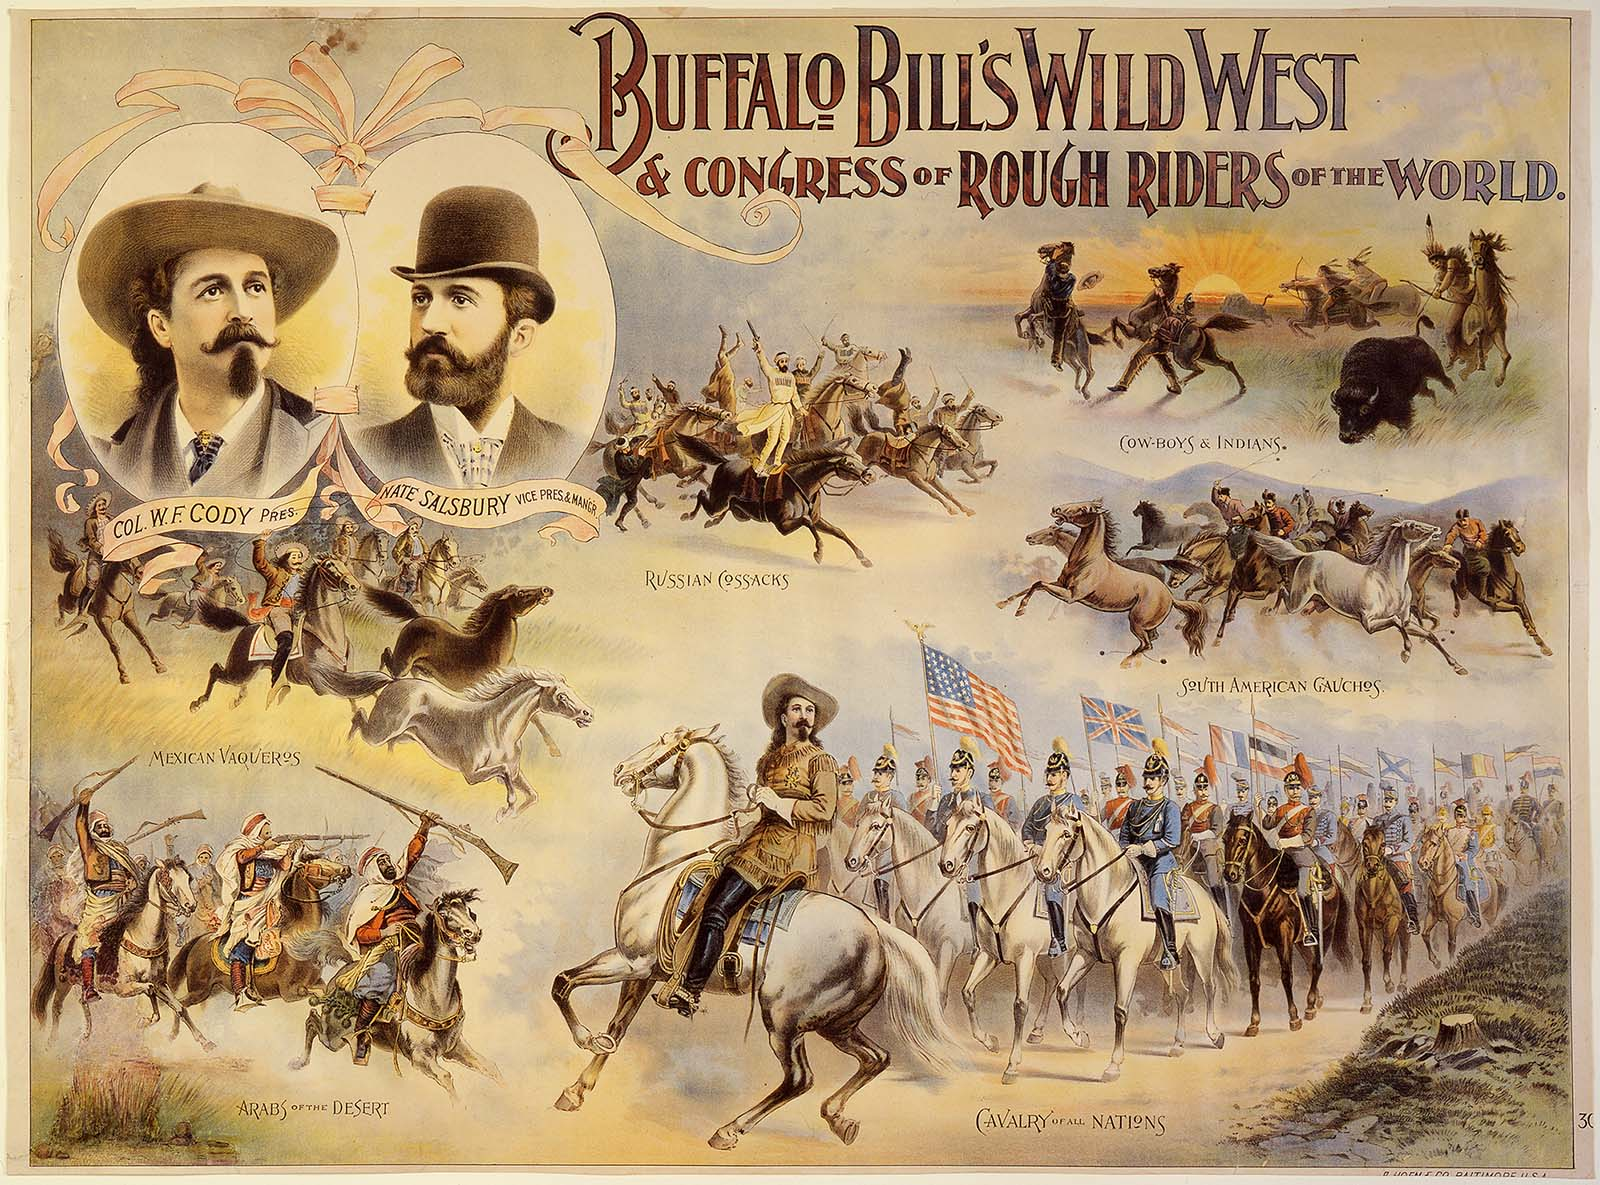 Buffalo Bill's Wild West and Congress of Rough Riders poster, ca. 1895, including Russians, Argentines, Arabs, cowboys, and Indians. A. Hoen & Company, Baltimore. Gift of The Coe Foundation. 1.69.170